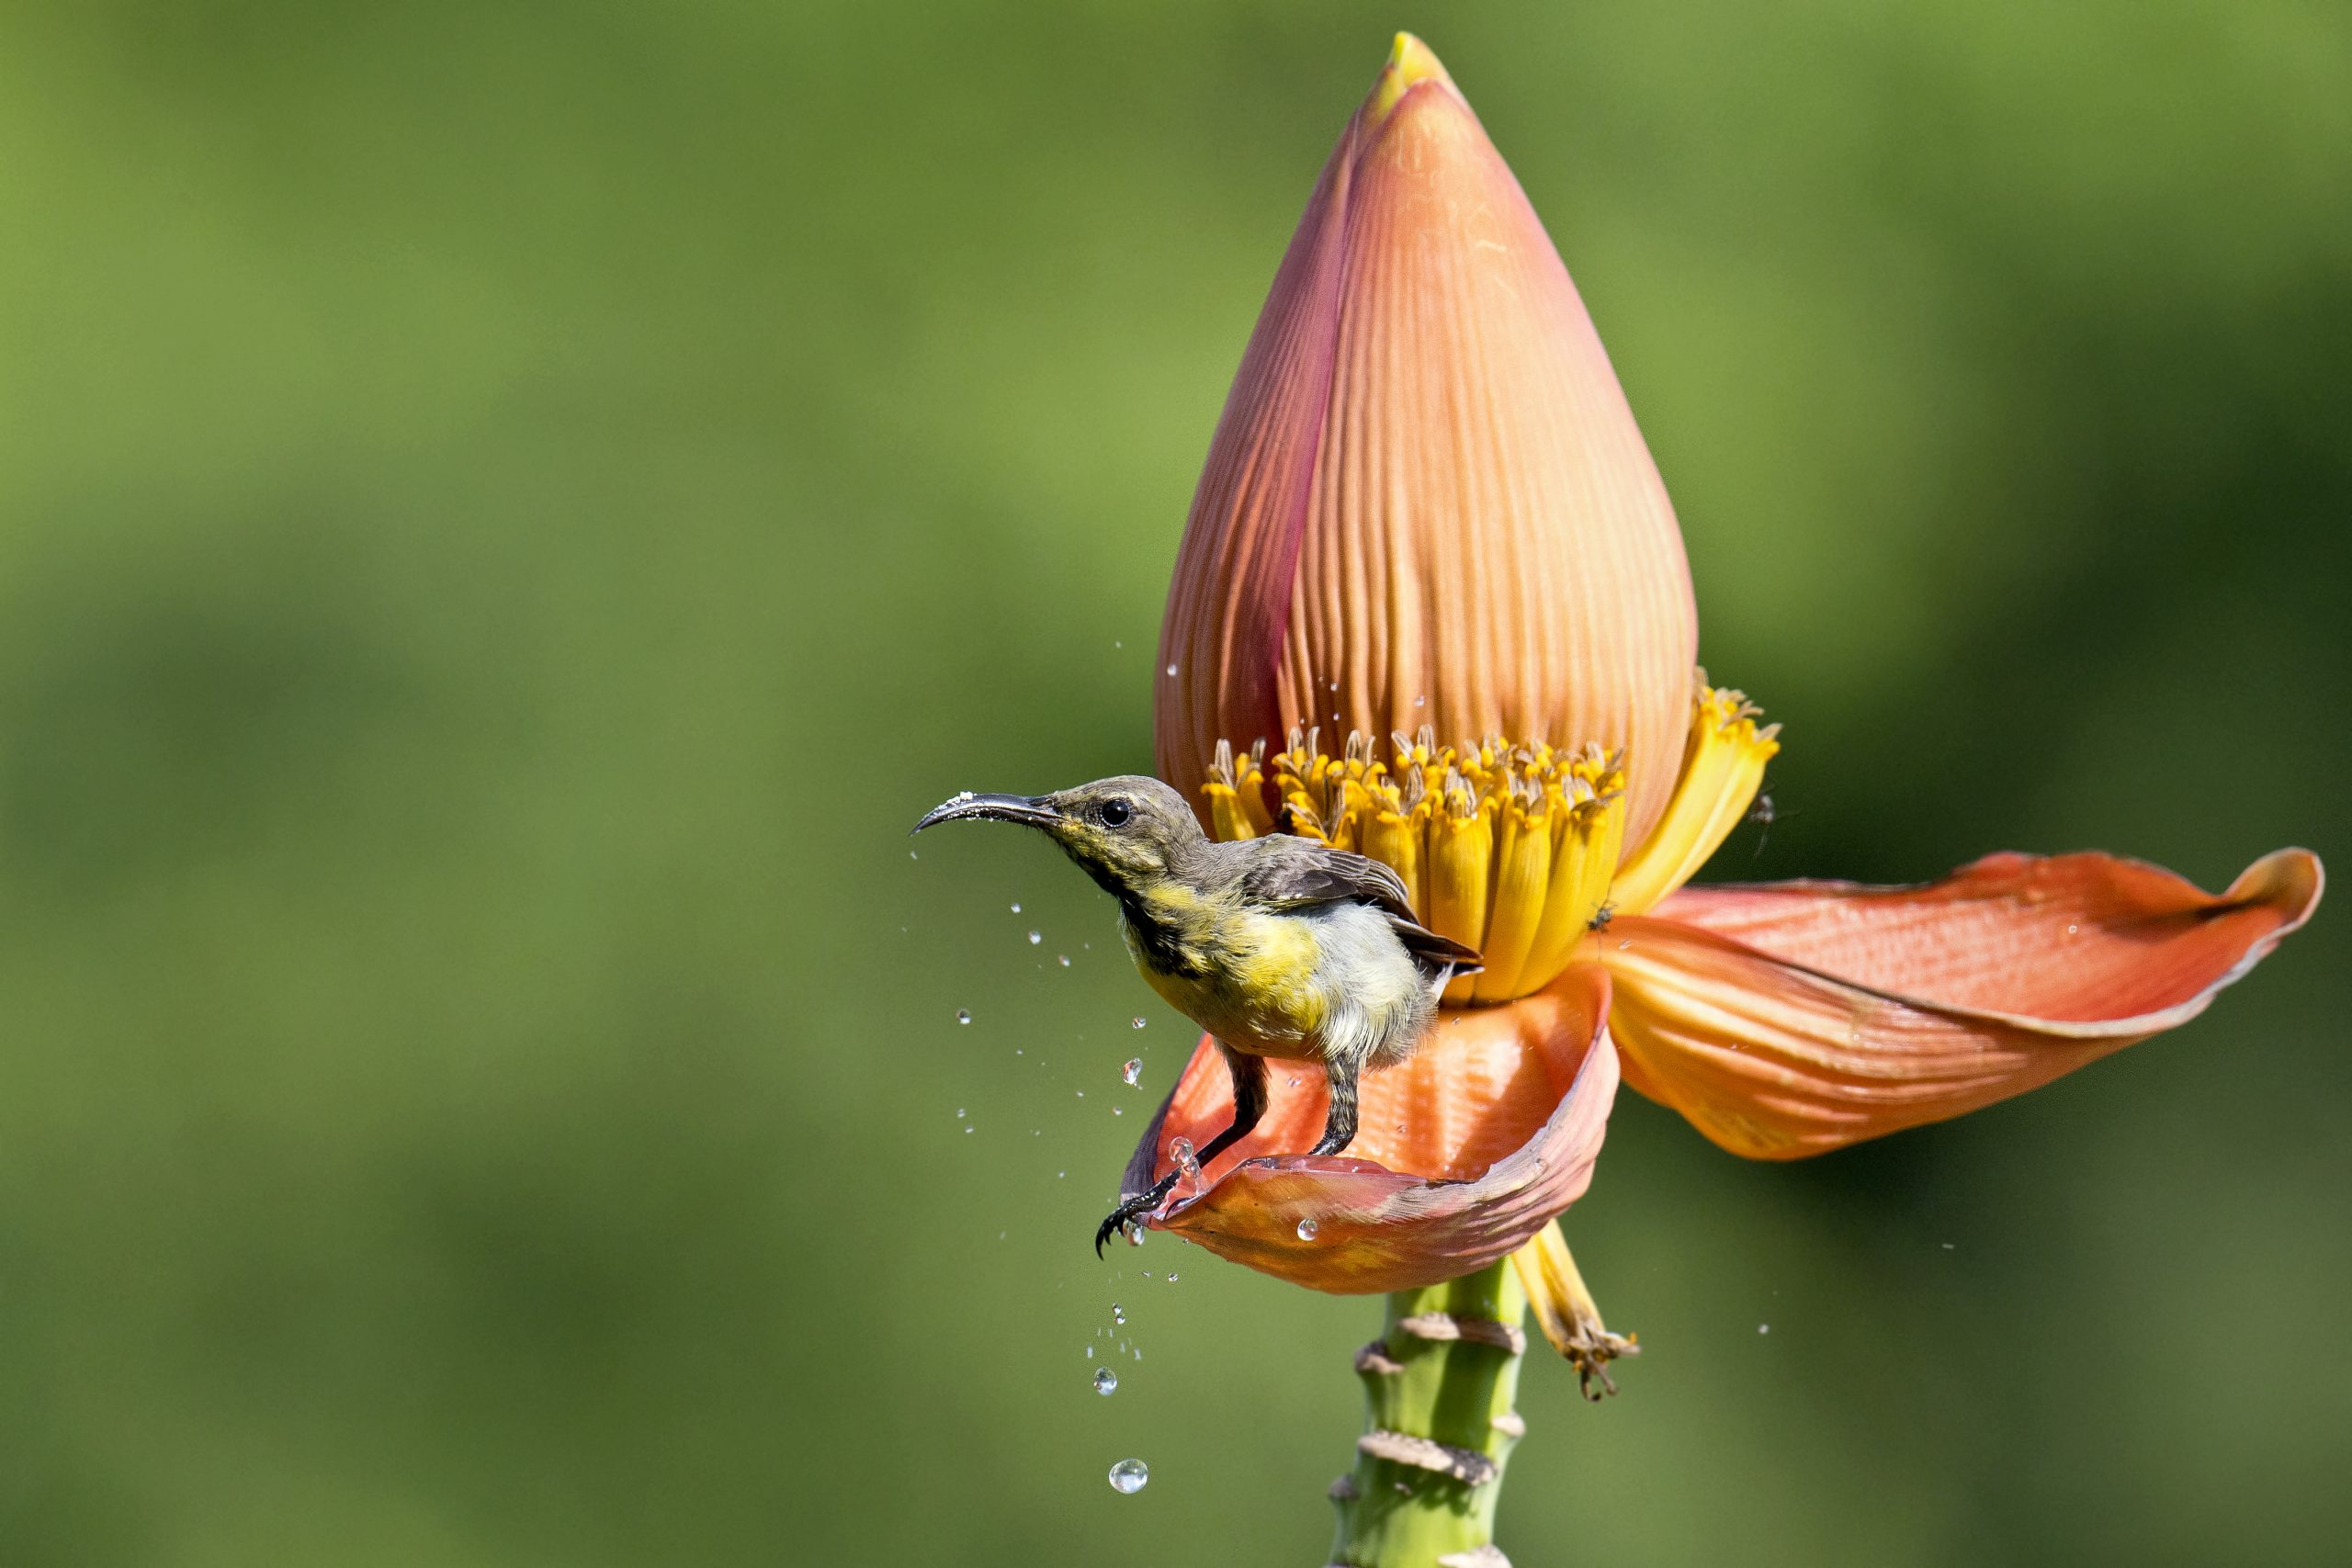 Bird sitting on the petal of the flower